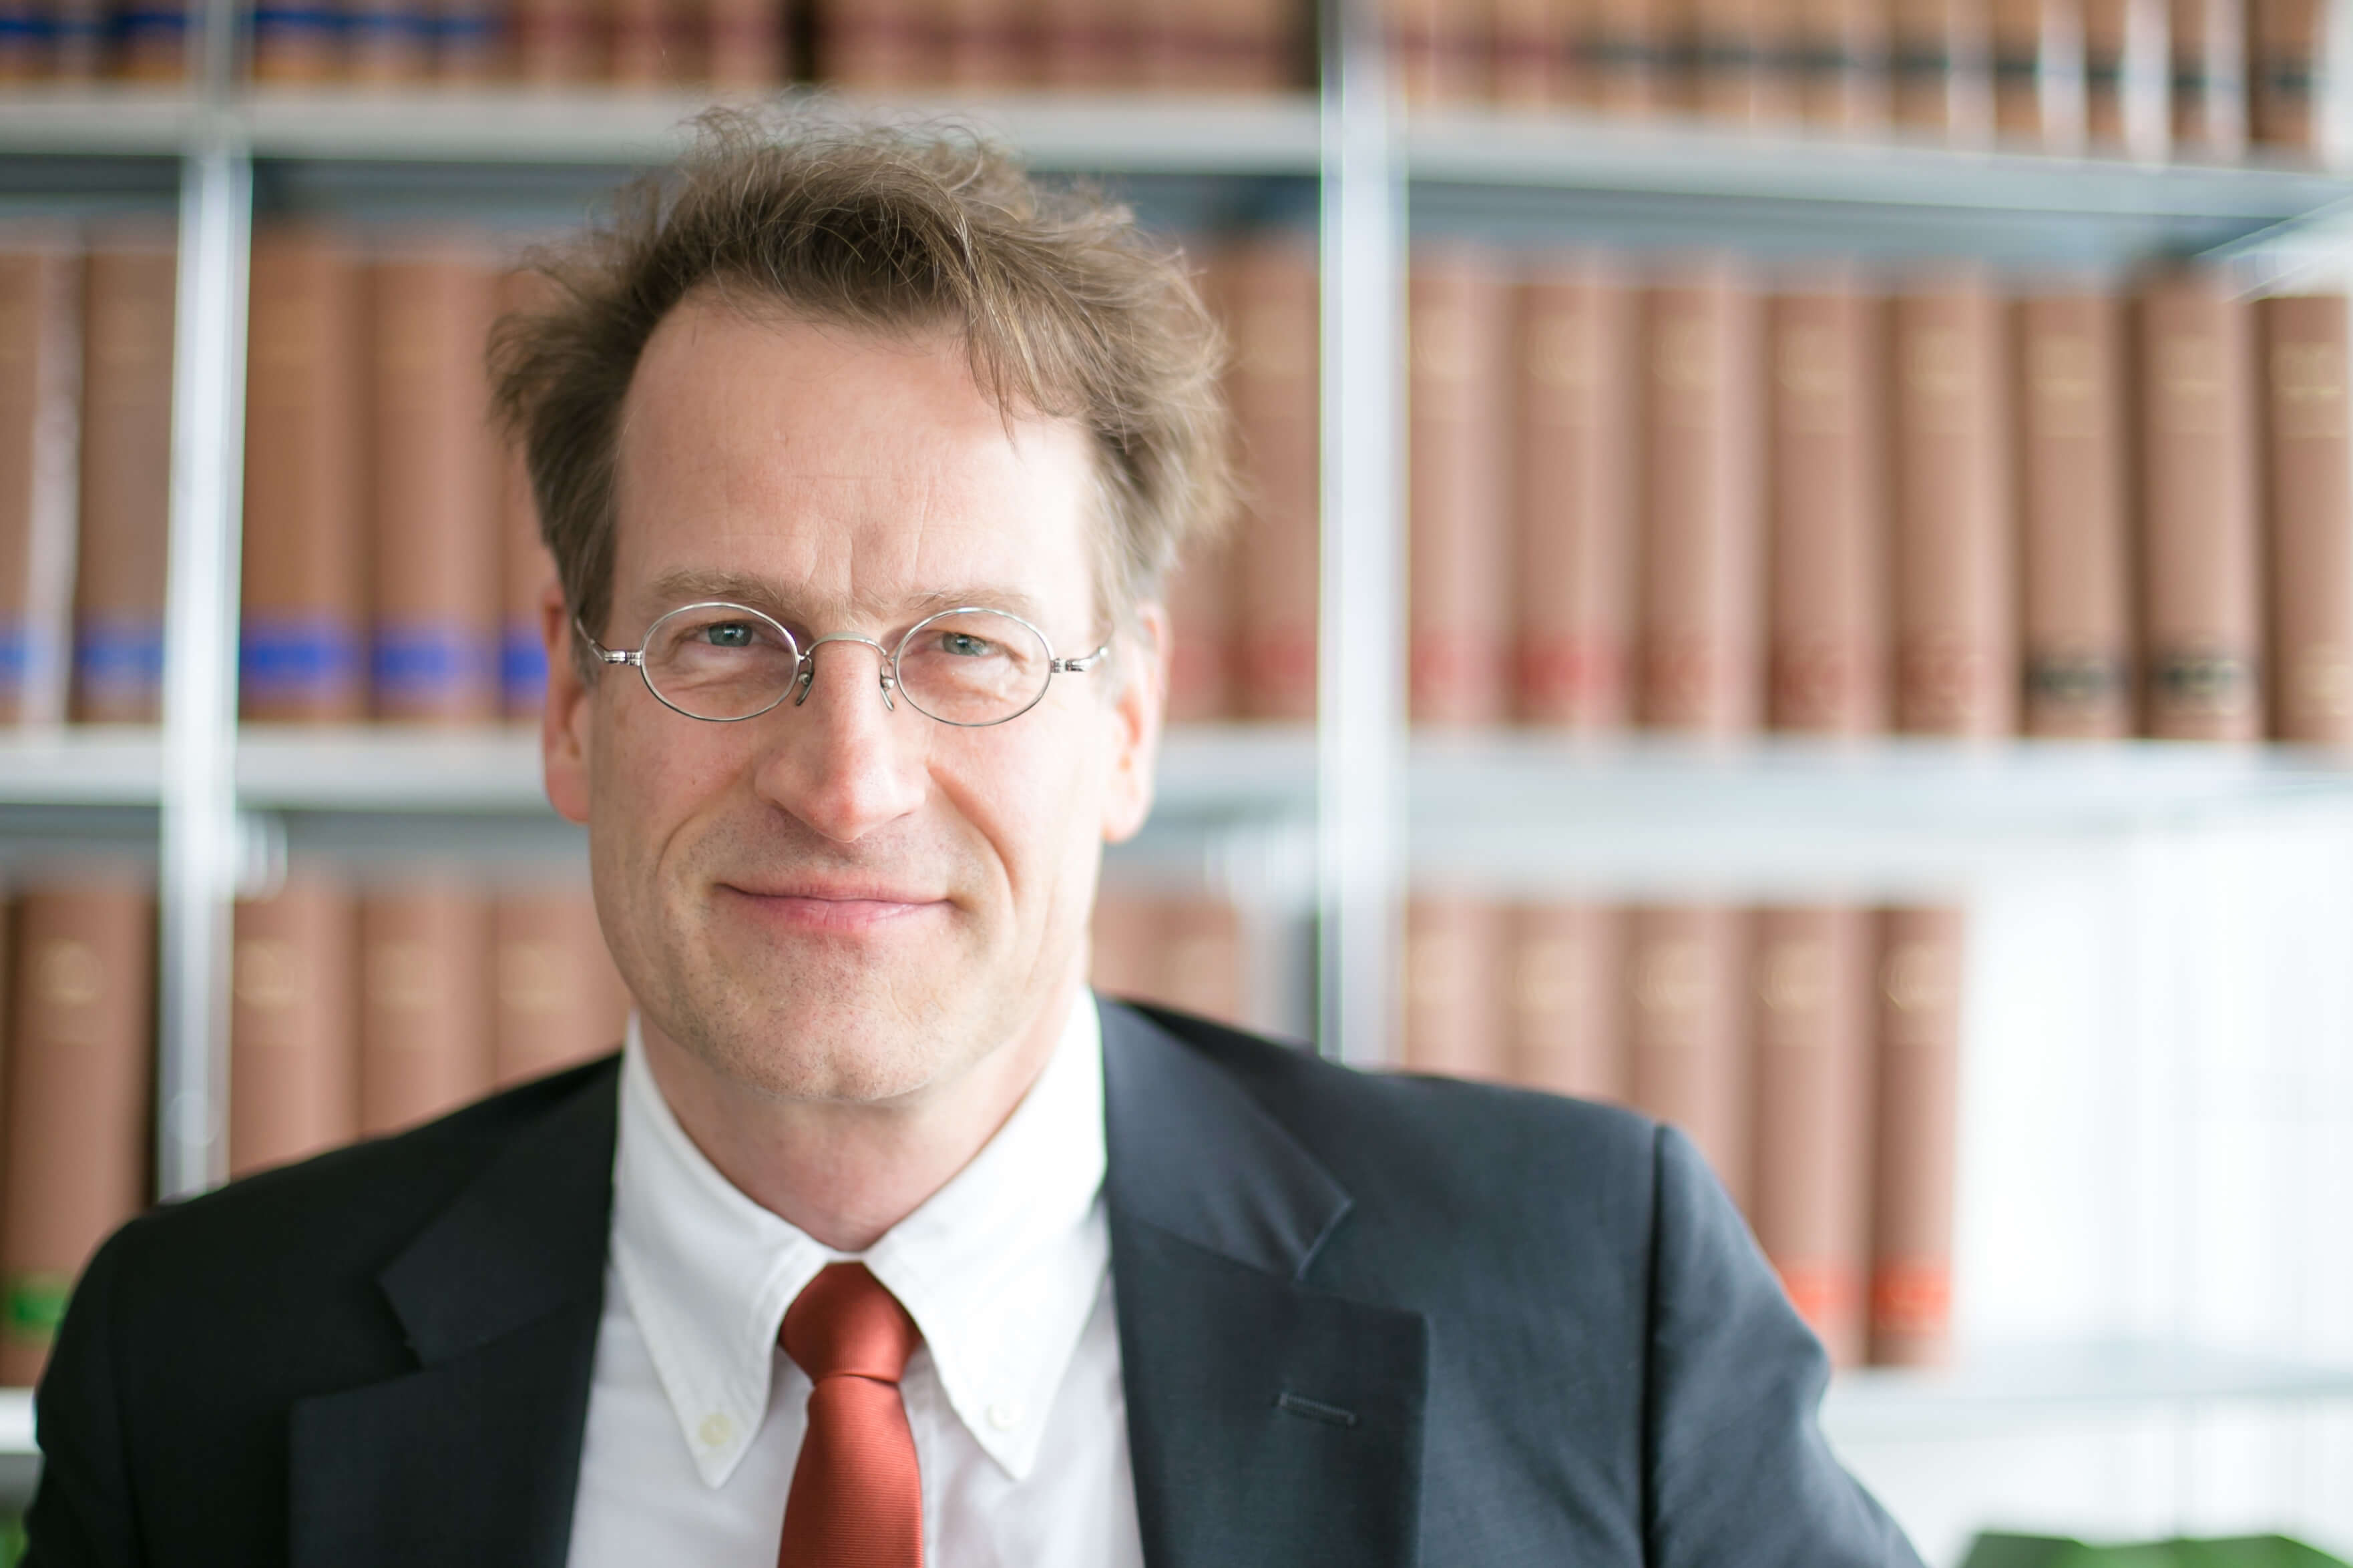 Dr. Roland Wiester